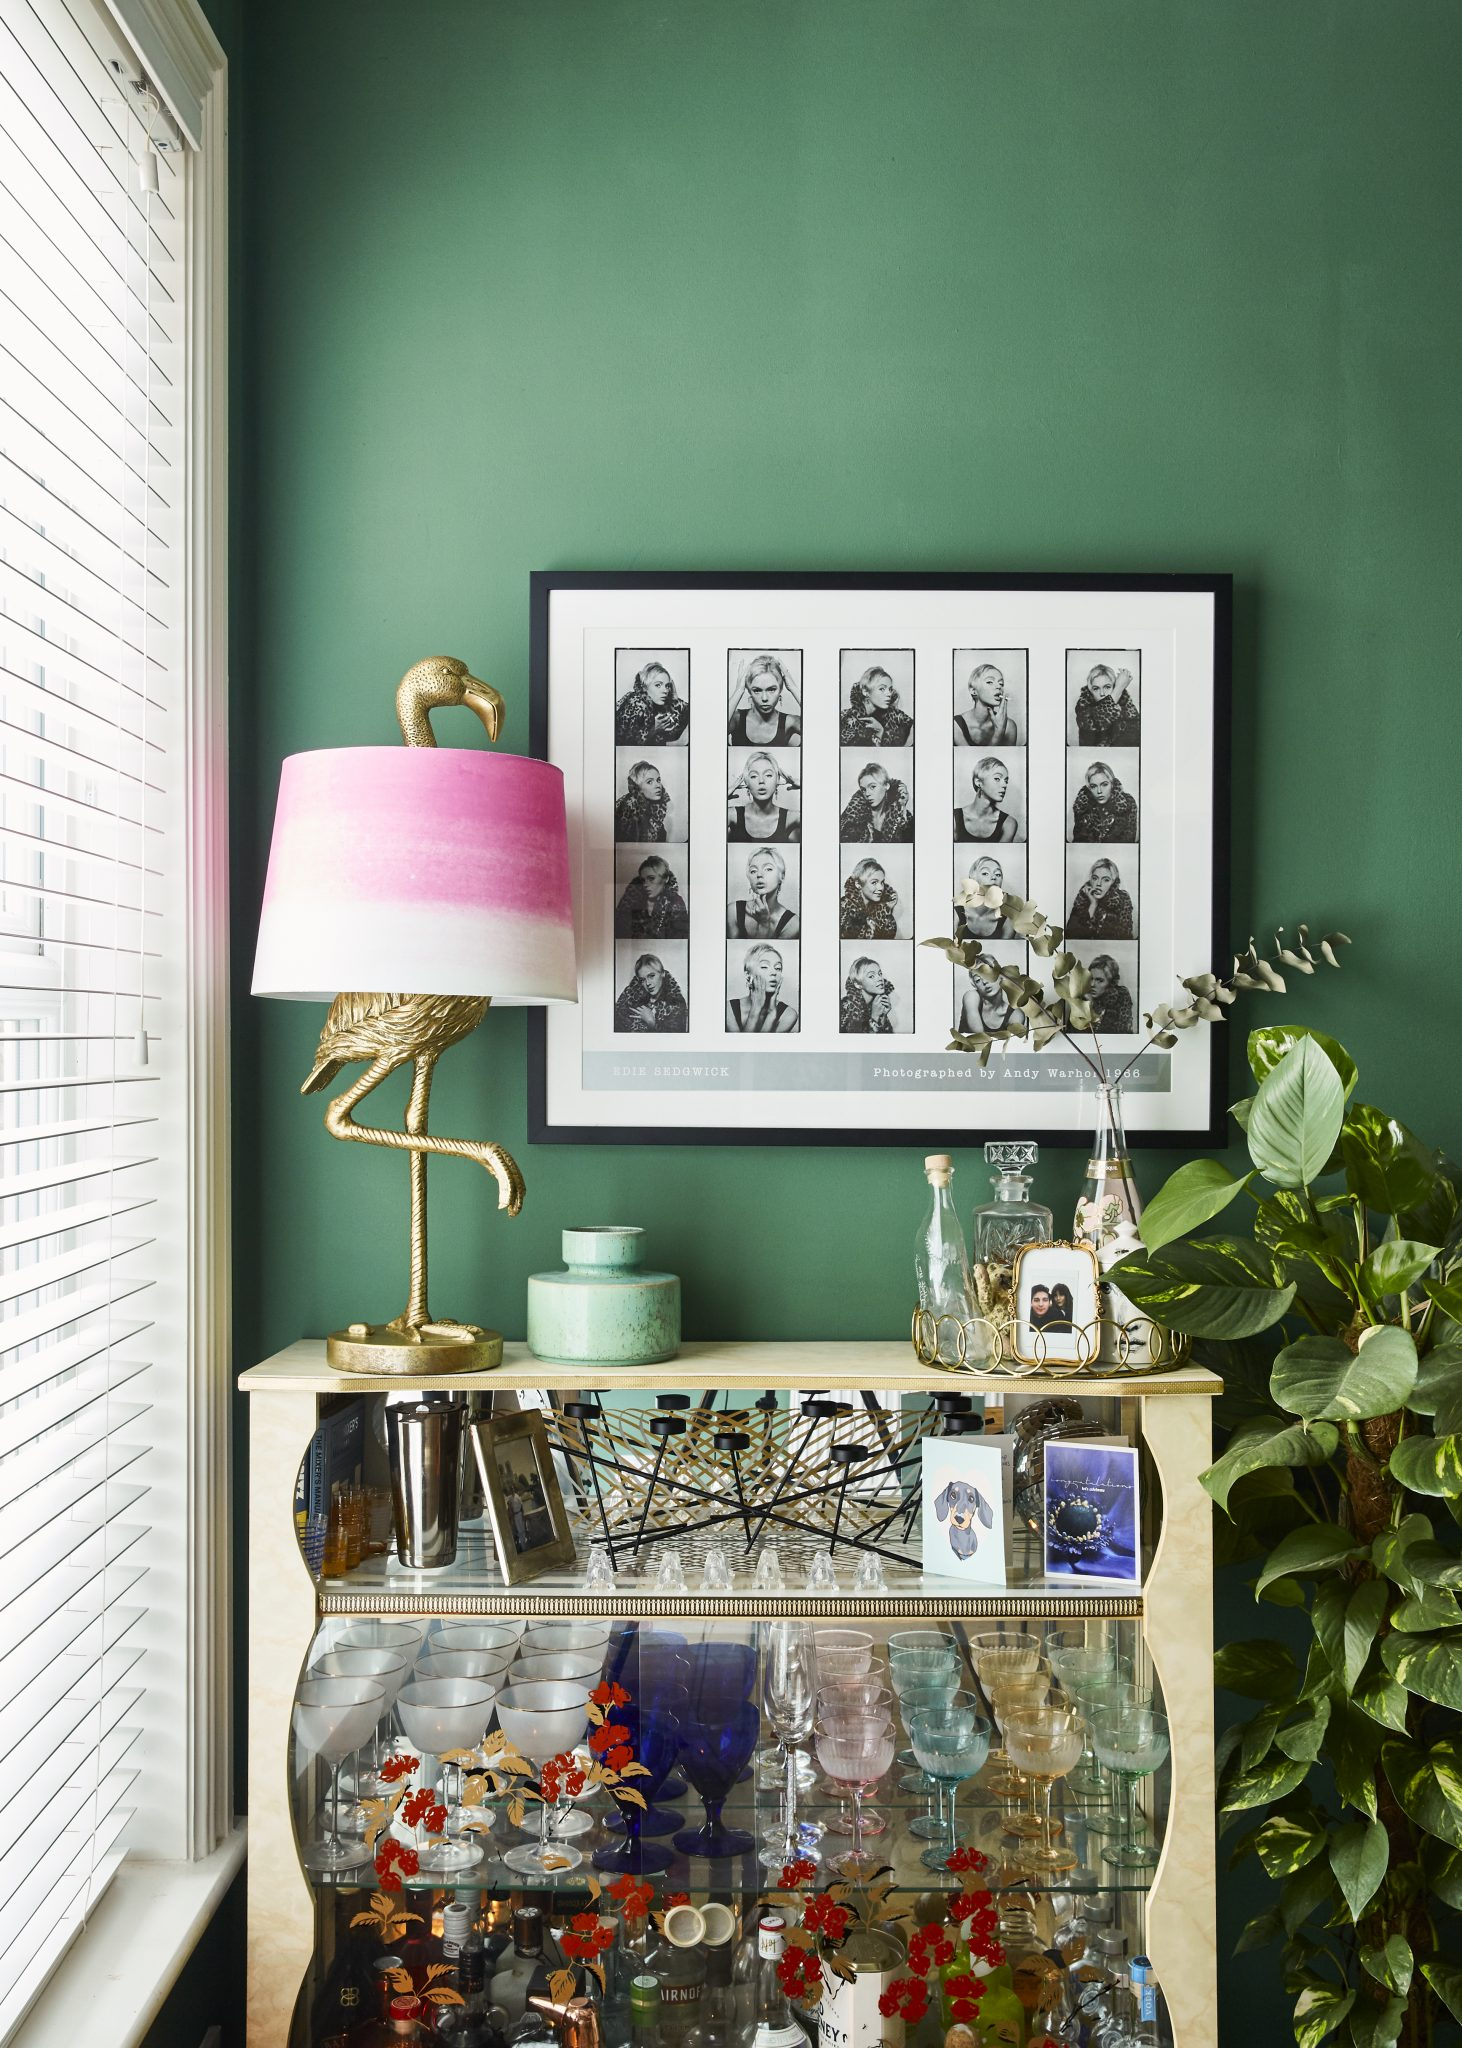 Green walls in the home inspiration. Bar cart inspiration